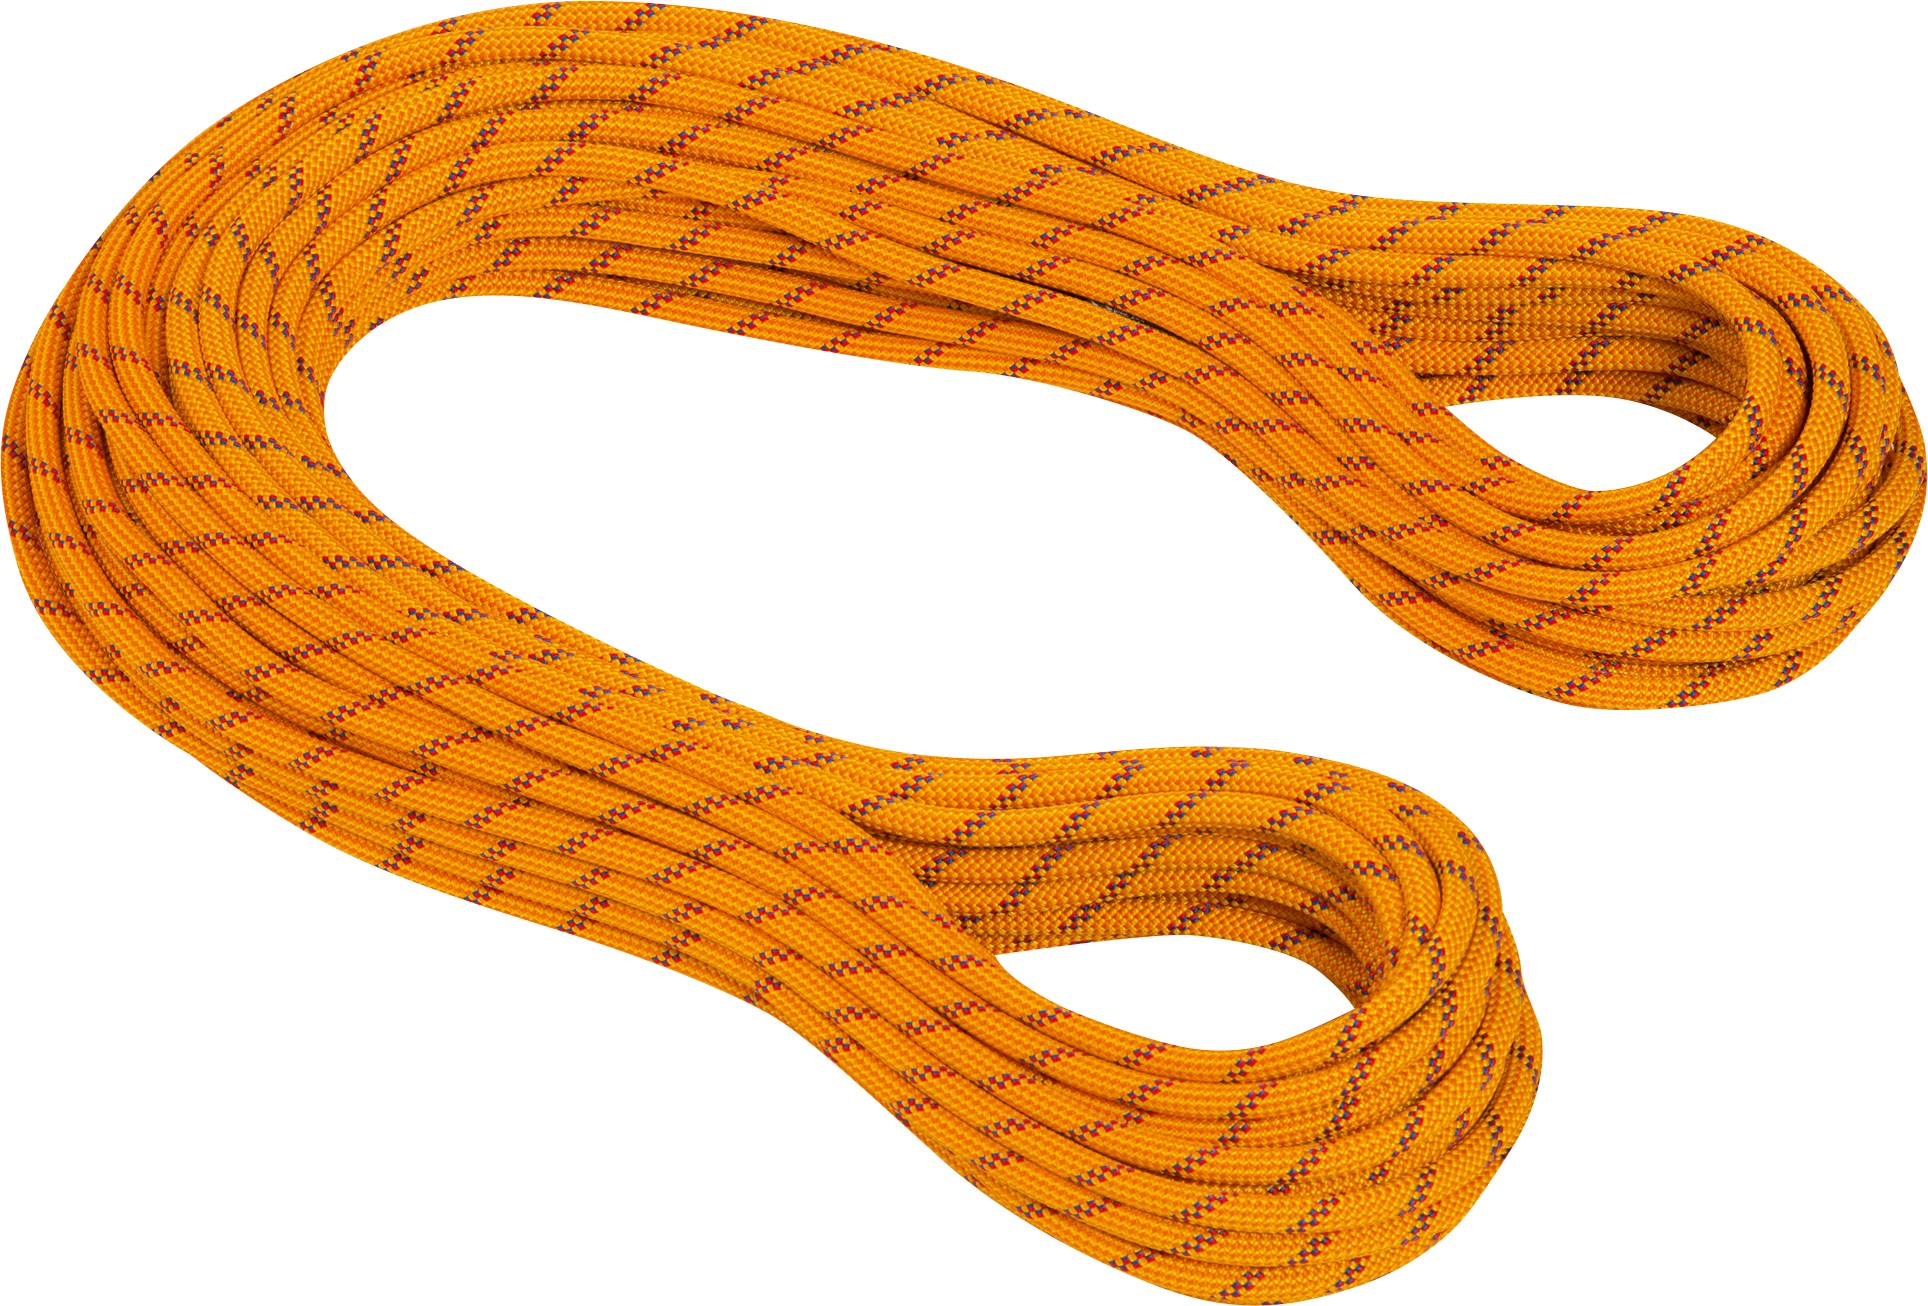 Mammut Genesis 8.5mm x 60m Dry Rope - Yellow/Orange